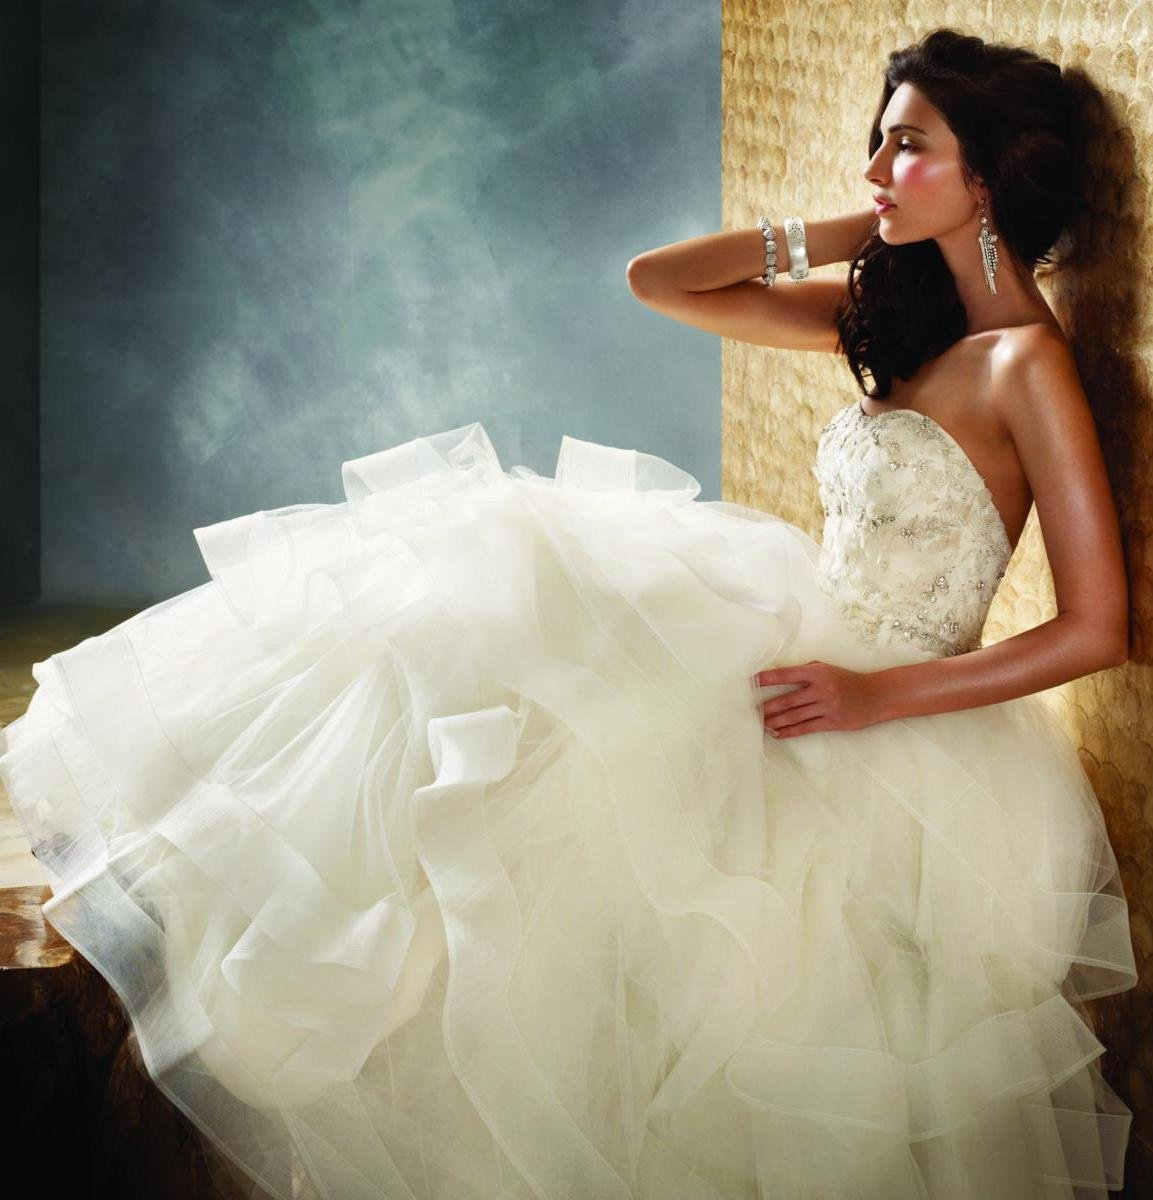 Wedding Dresses, Sweetheart Wedding Dresses, Ball Gown Wedding Dresses, Ruffled Wedding Dresses, Fashion, white, ivory, Jim hjelm, Sweetheart, Strapless, Strapless Wedding Dresses, Beading, Tulle, Floor, Ruffles, Tiers, Pick-ups, Sleeveless, Ball gown, Avant-Garde, Beaded Wedding Dresses, tulle wedding dresses, Floor Wedding Dresses, Tiered Wedding Dresses